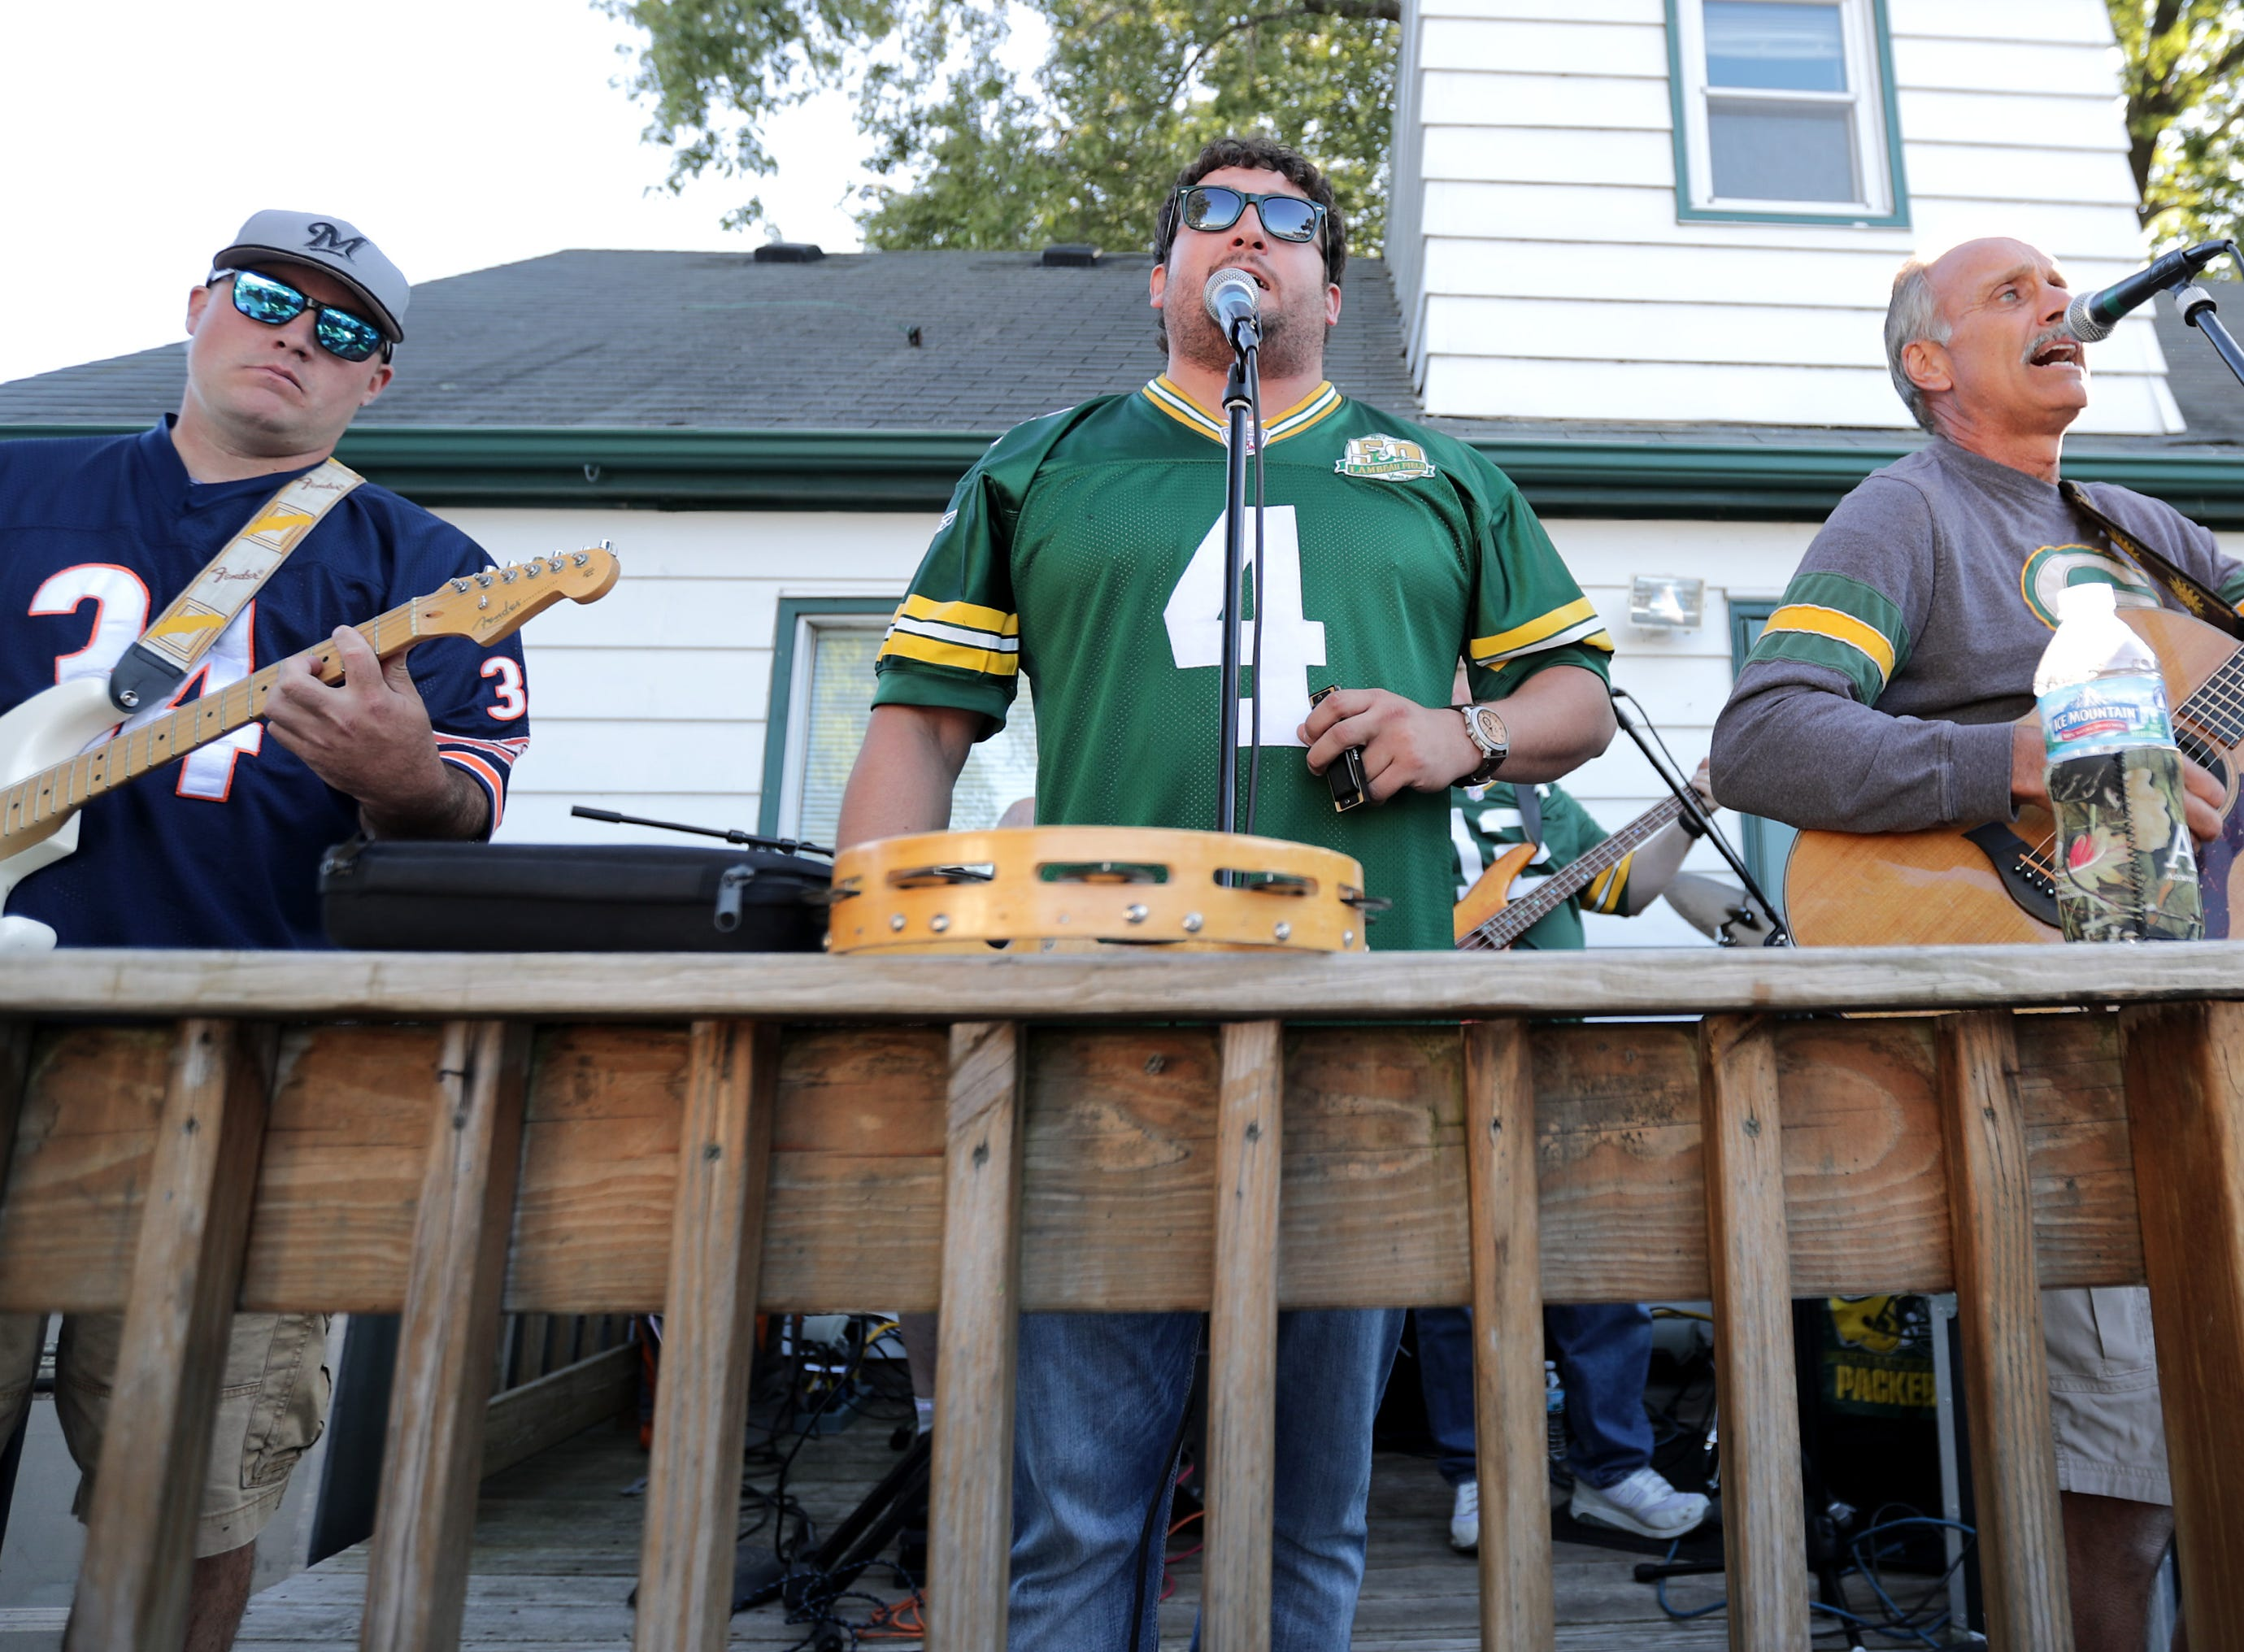 The Lowest Bidders play a pregame show before the Green Bay Packers host the Chicago Bears in the season opener on Sunday, September 9, 2018, at Lambeau Field in Green Bay, Wis.